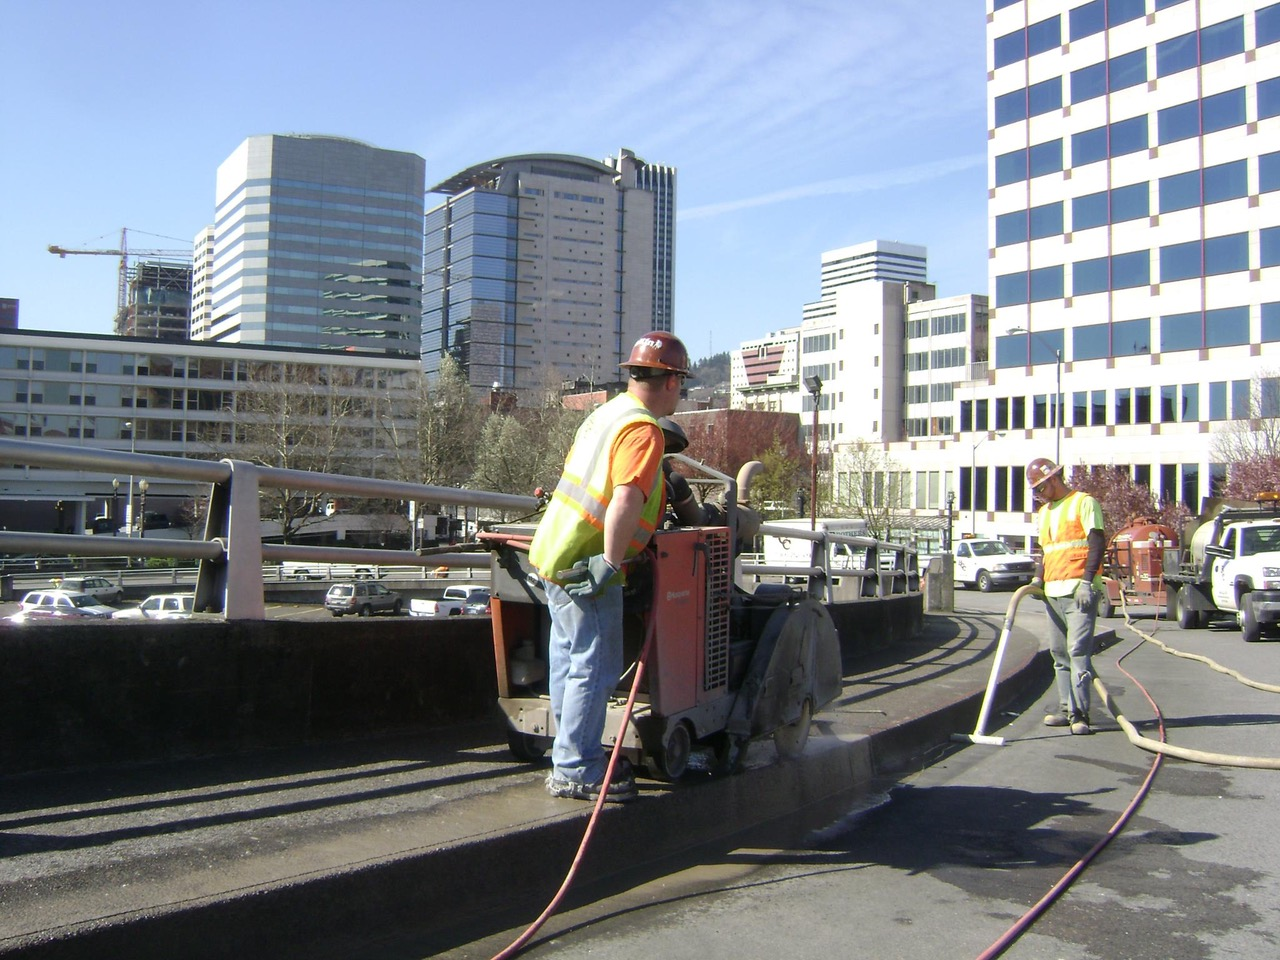 Sawcutter with Portland skyline